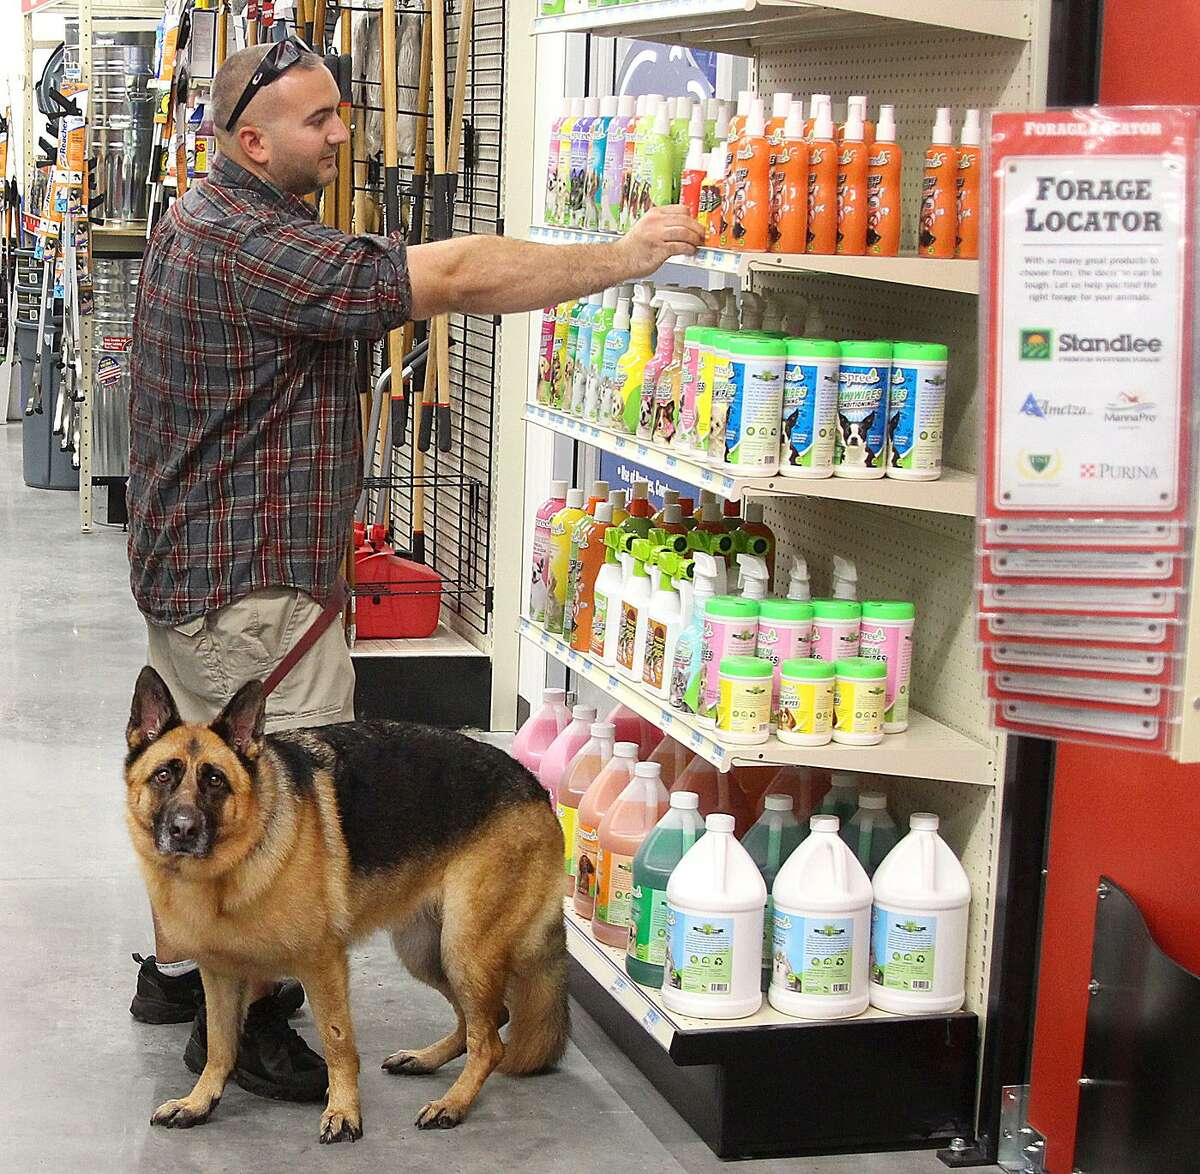 Derrek Guertin looks at pet shampoo as Kona stands by his side in the new Tractor Supply Co. store in Newtown, Conn., on Friday, Sept. 30, 2017.